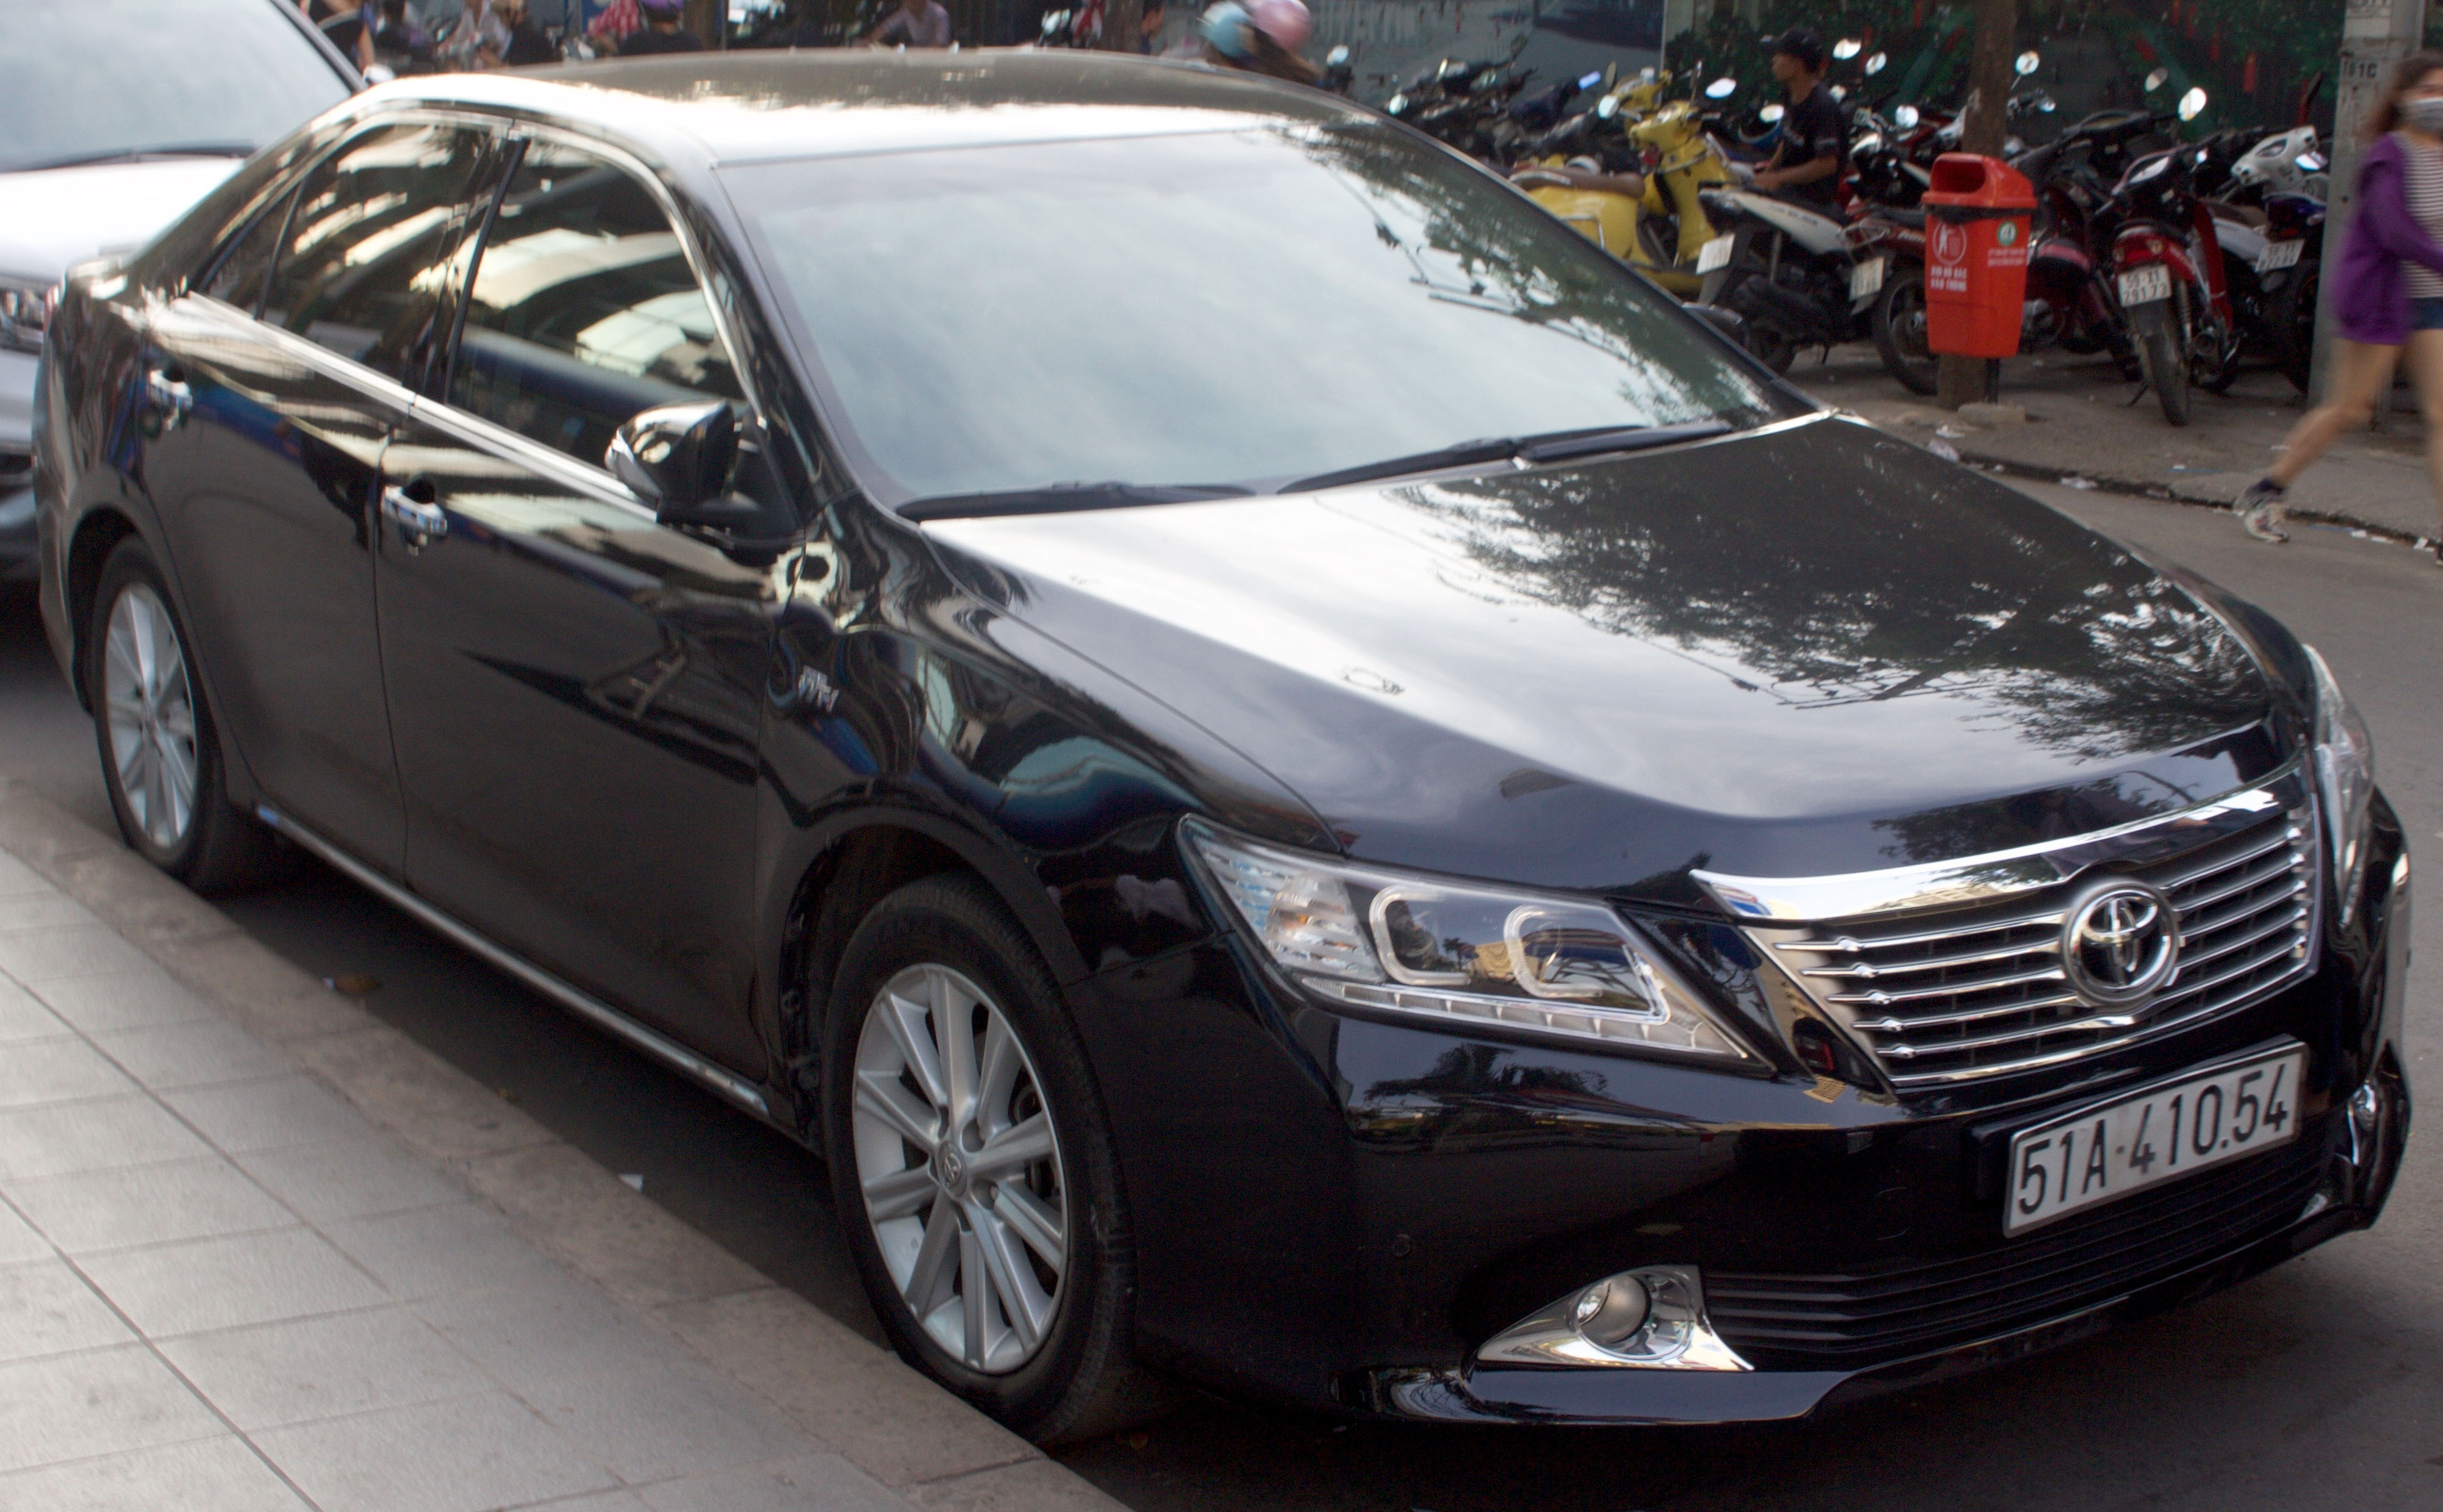 Camry Car For Sale In Jeddah